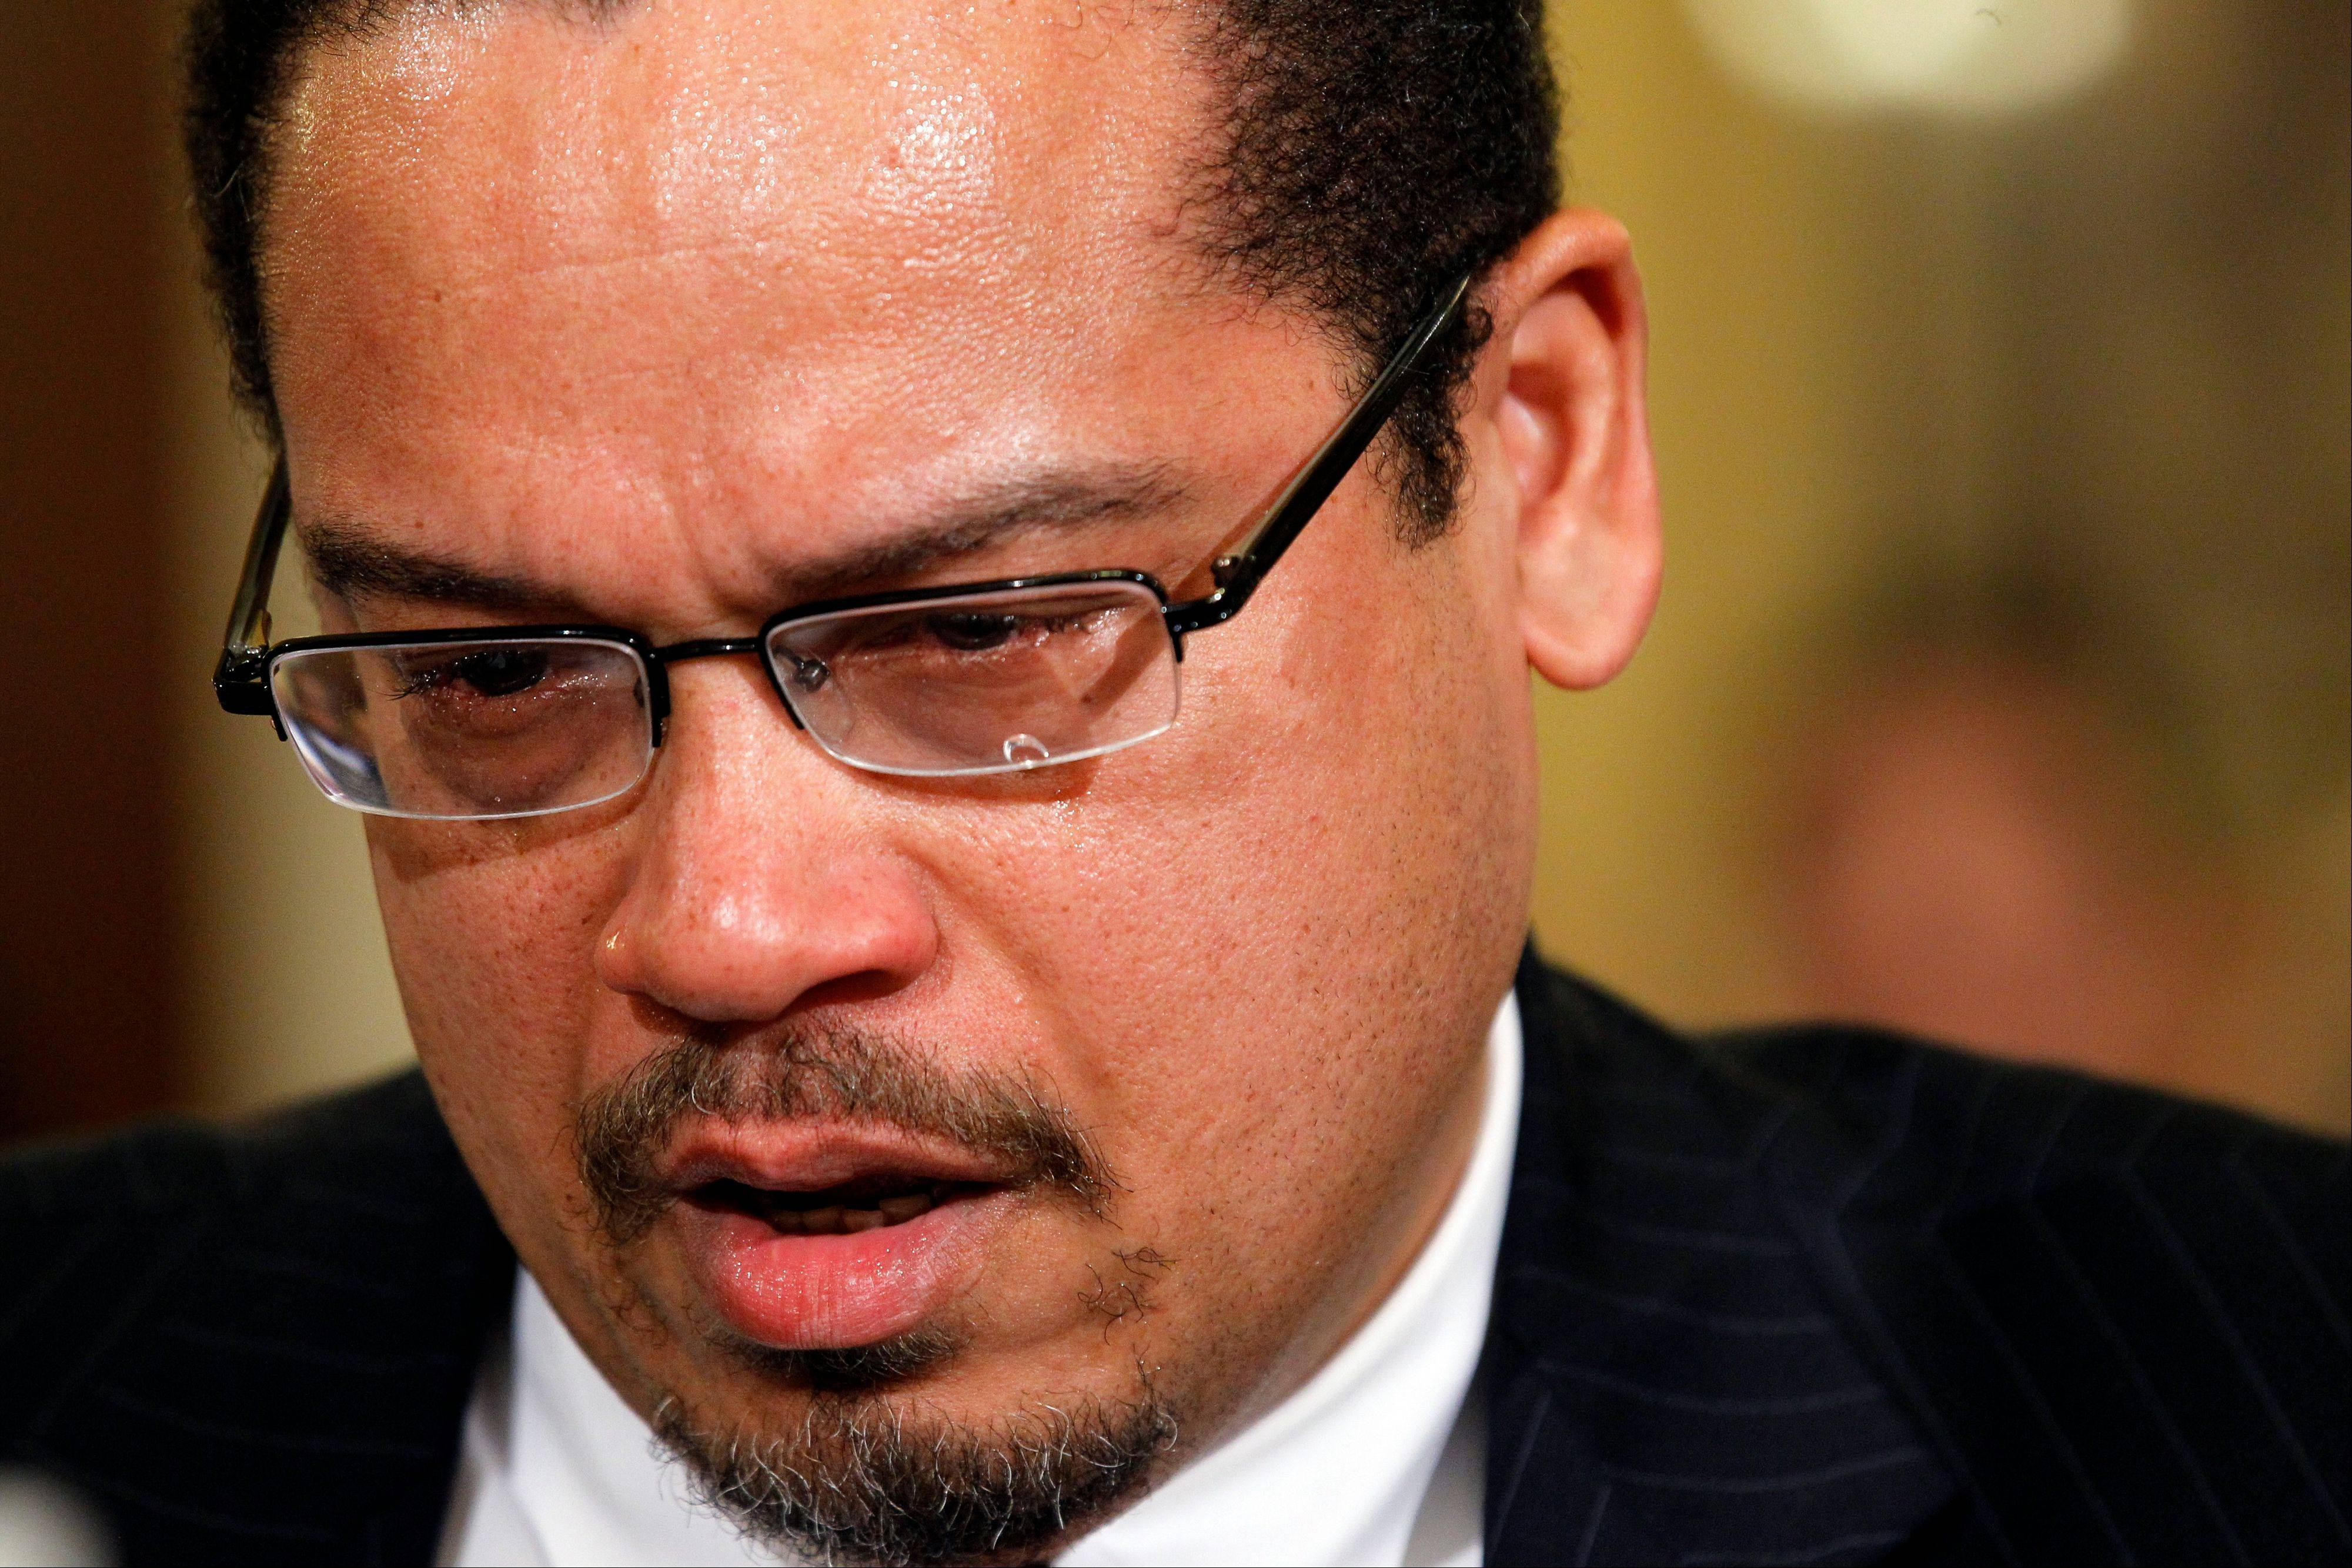 "In this photo taken March 10, 2011, Rep. Keith Ellison, the first Muslim elected to Congress, becomes emotional as he testifies before the House Homeland Security Committee on the extent of the radicalization of American Muslims on Capitol Hill in Washington. Democratic leaders have generally supported President Barack Obama's stance on Egypt. But on Sunday, Ellison said, ""I would cut off aid but engage in intense diplomacy in Egypt and in the region to try to say, 'Look, we will restore aid when you stop the bloodshed in the street and set up a path towards democracy that you were on before.'"""